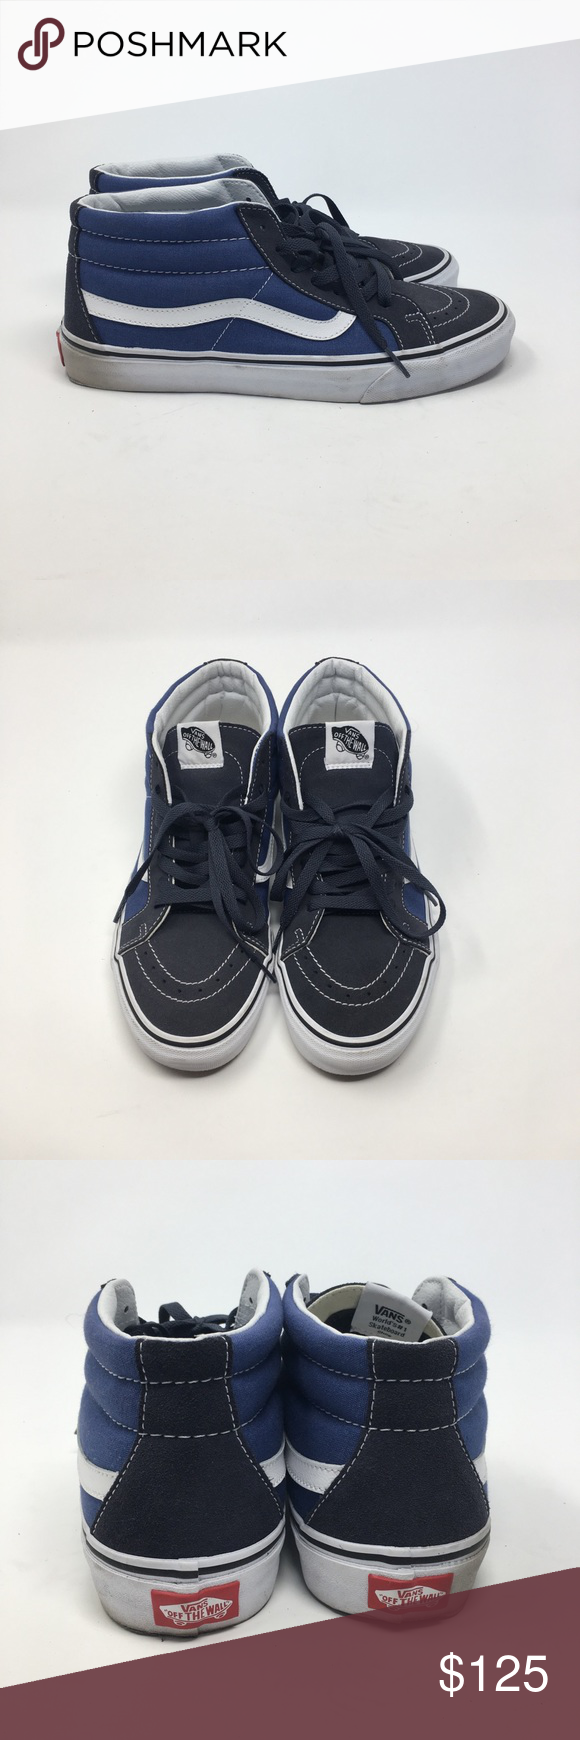 Sample Vans Sk8 Mid Pro Men s Size 9 Sample Vans Sk8 Mid Pro. Men s size 9.  Worn twice. Overall good condition! Does not come with og box. 07c8dc65275c